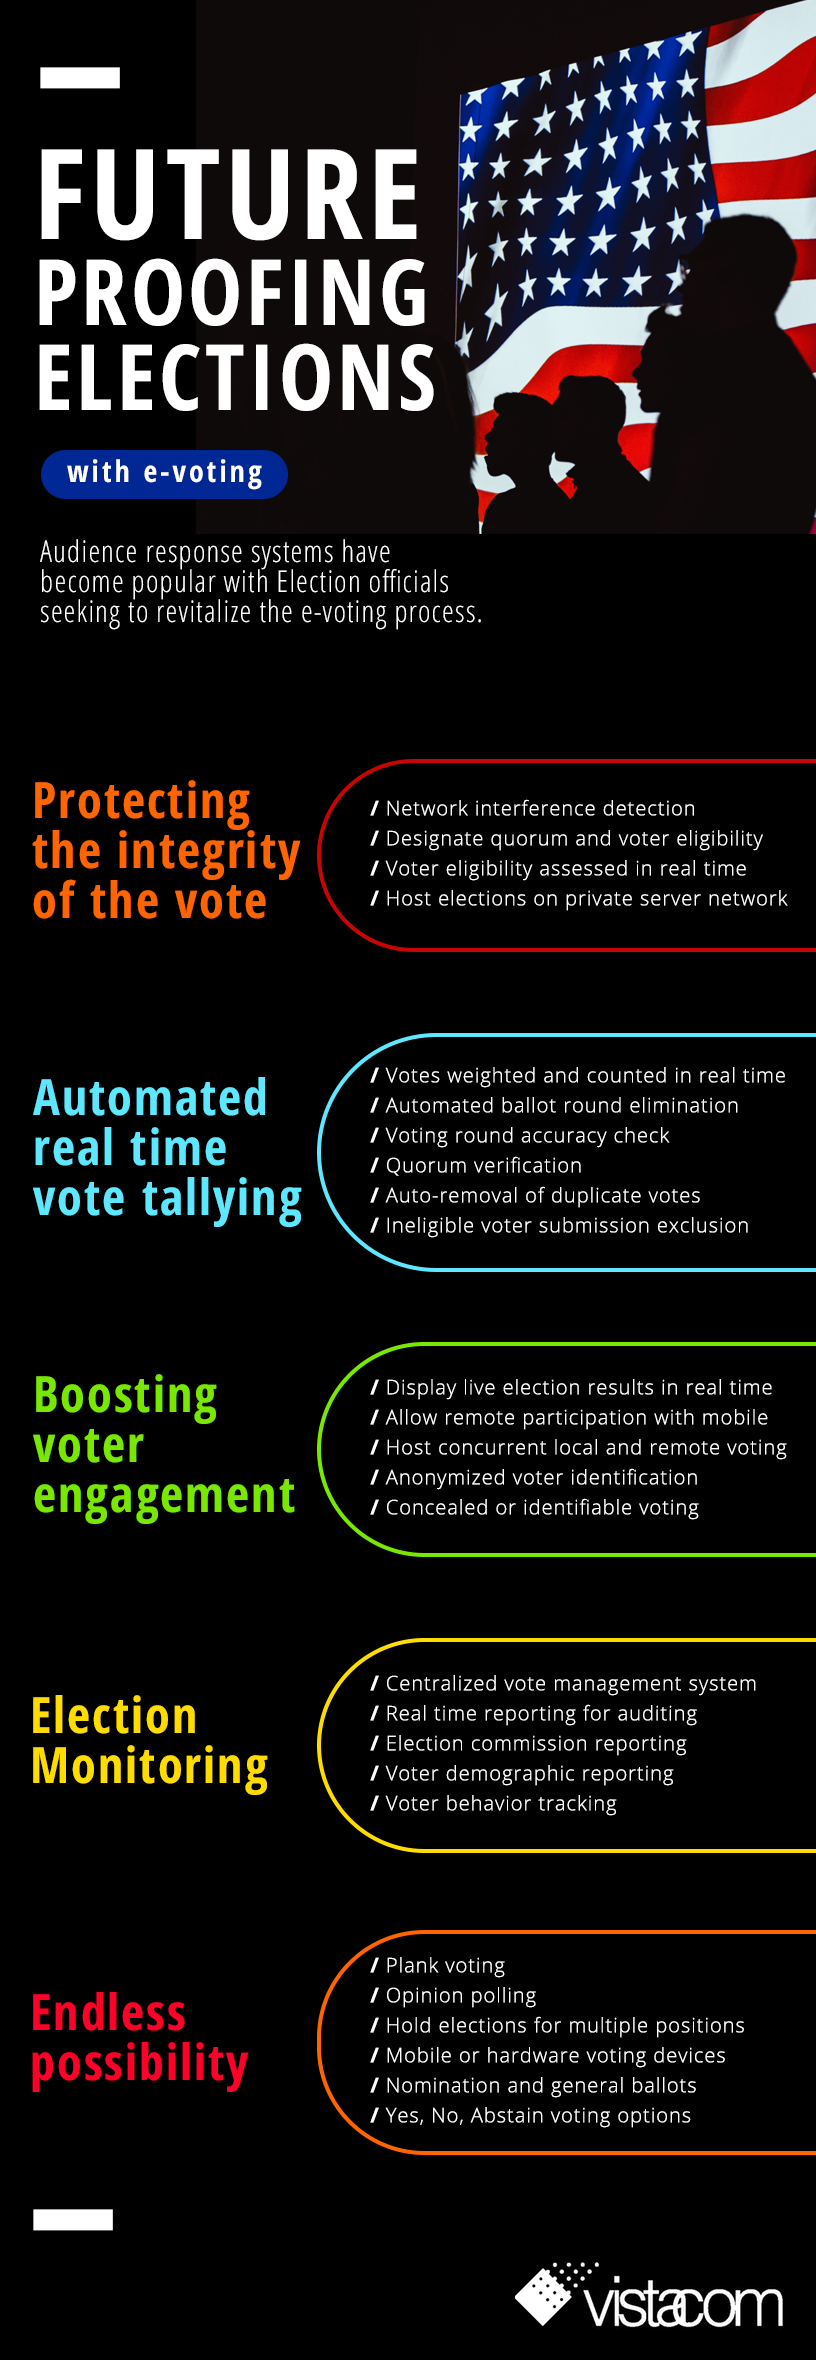 Future proofing elections with e-voting infographic